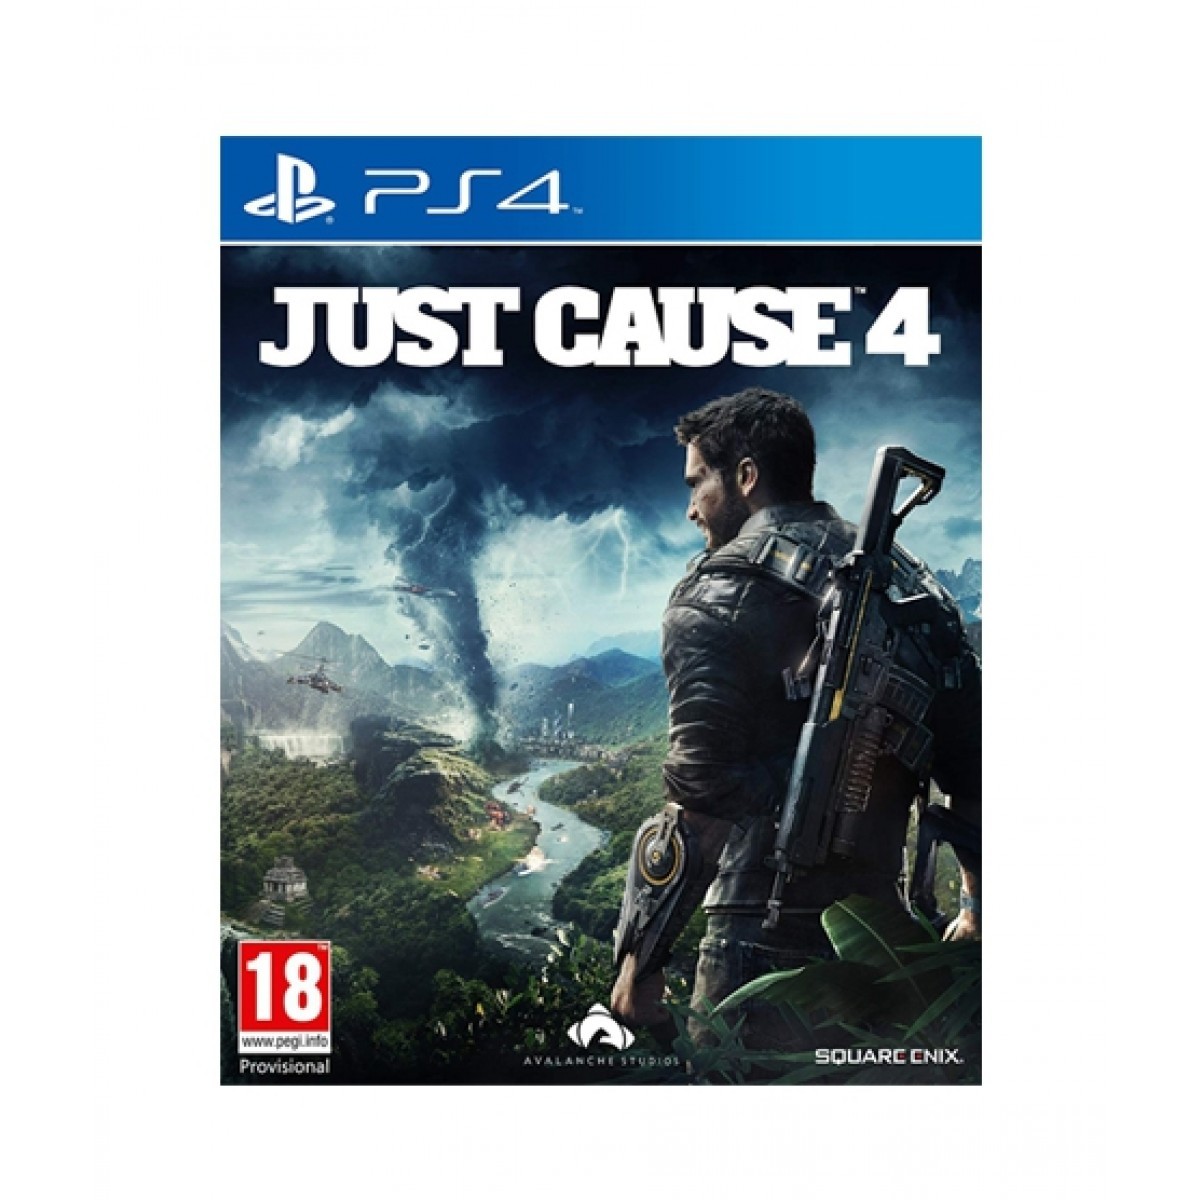 Just Cause 4 Game For PS4